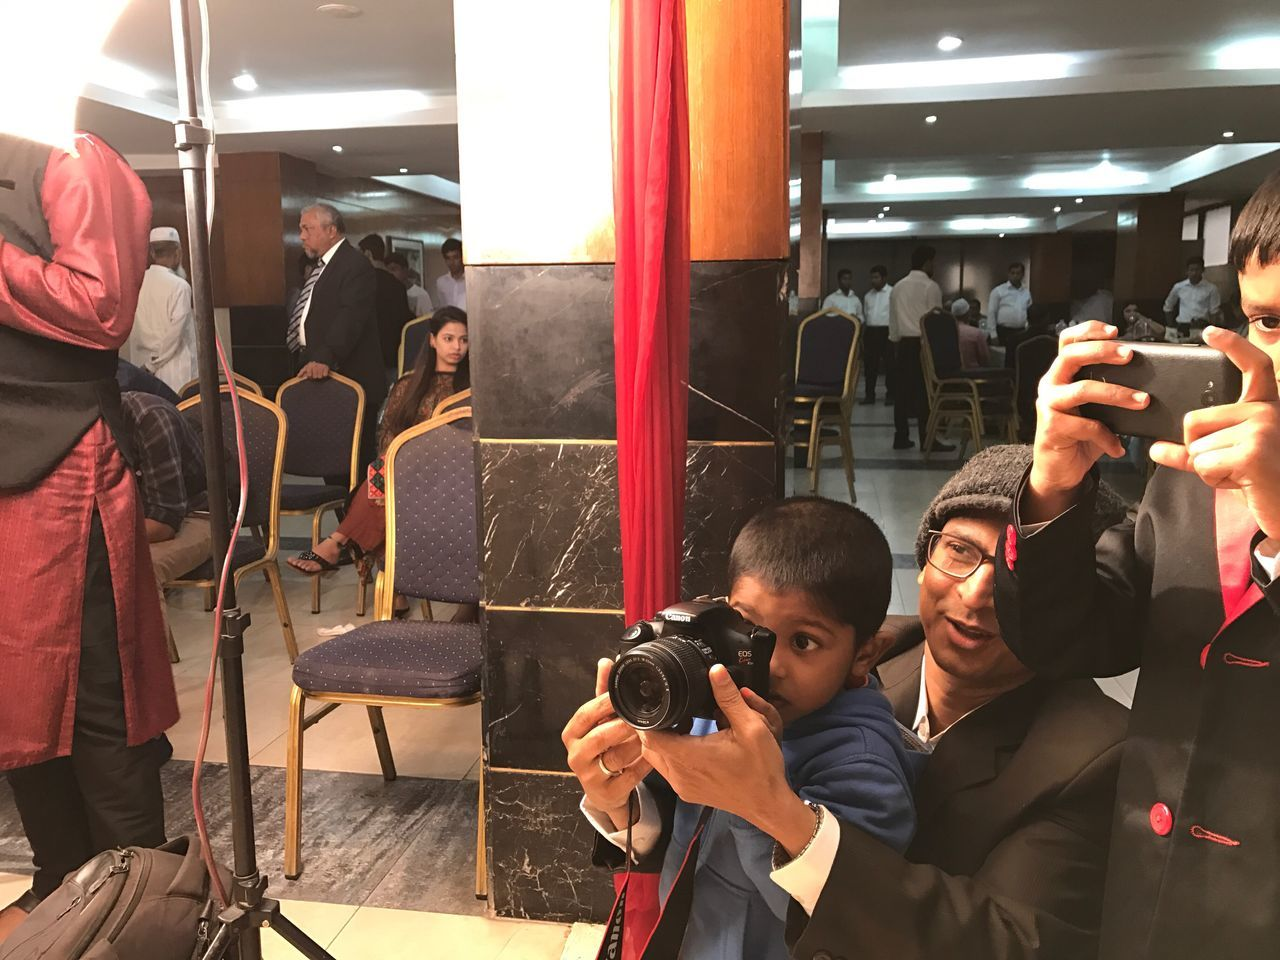 Photographer Photography Themes Camera - Photographic Equipment Photographing The Media Men Photographer Business Adults Only Occupation Adult Women Working People Television Camera Filming Film Industry Only Men Young Adult Microphone Technology